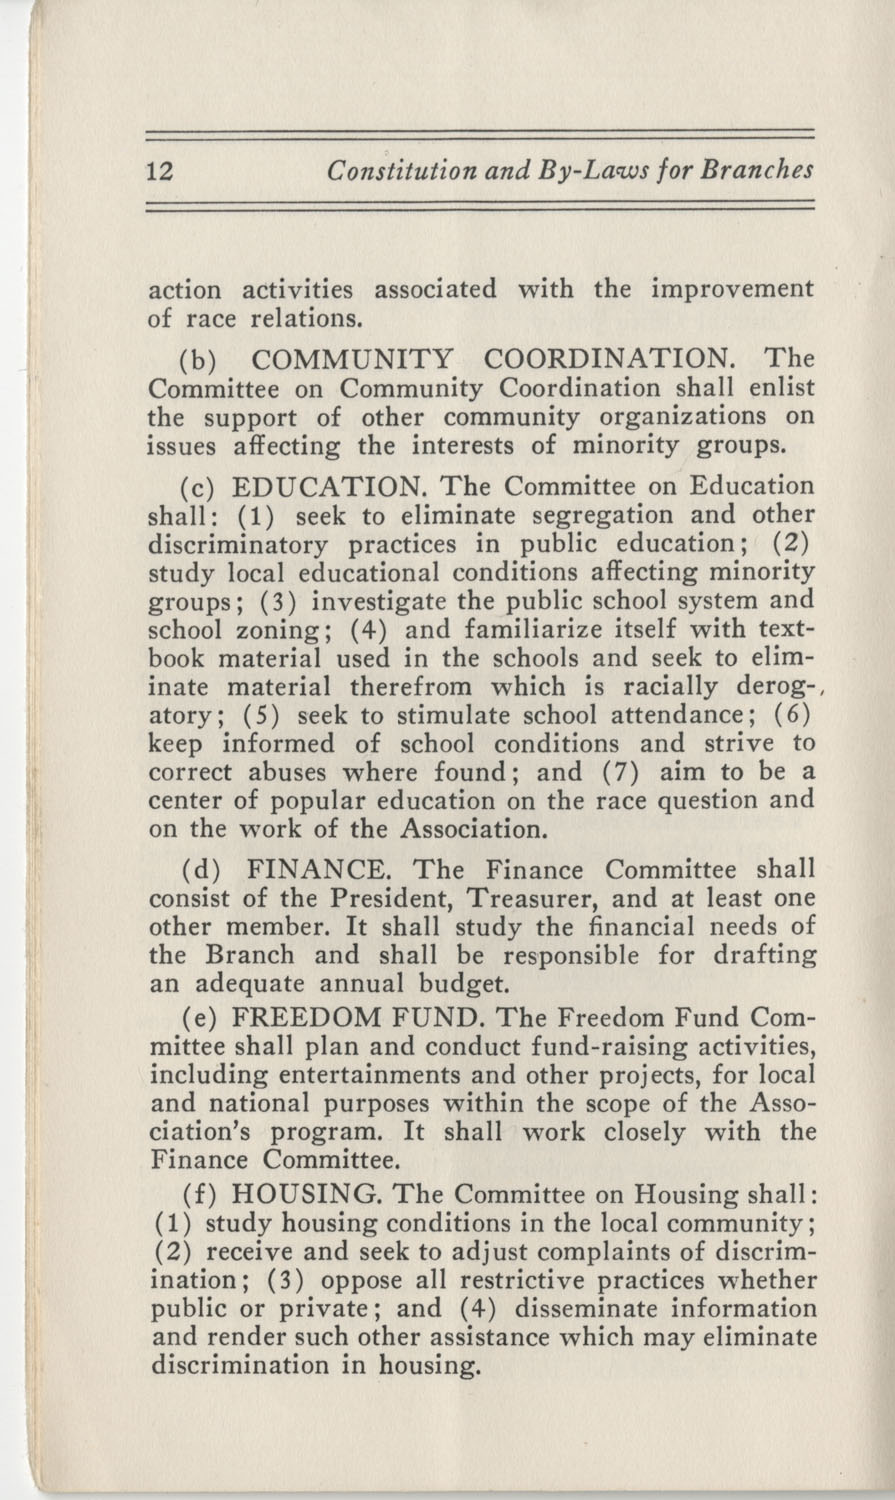 Constitutions and By-Laws, September 1960, Page 12